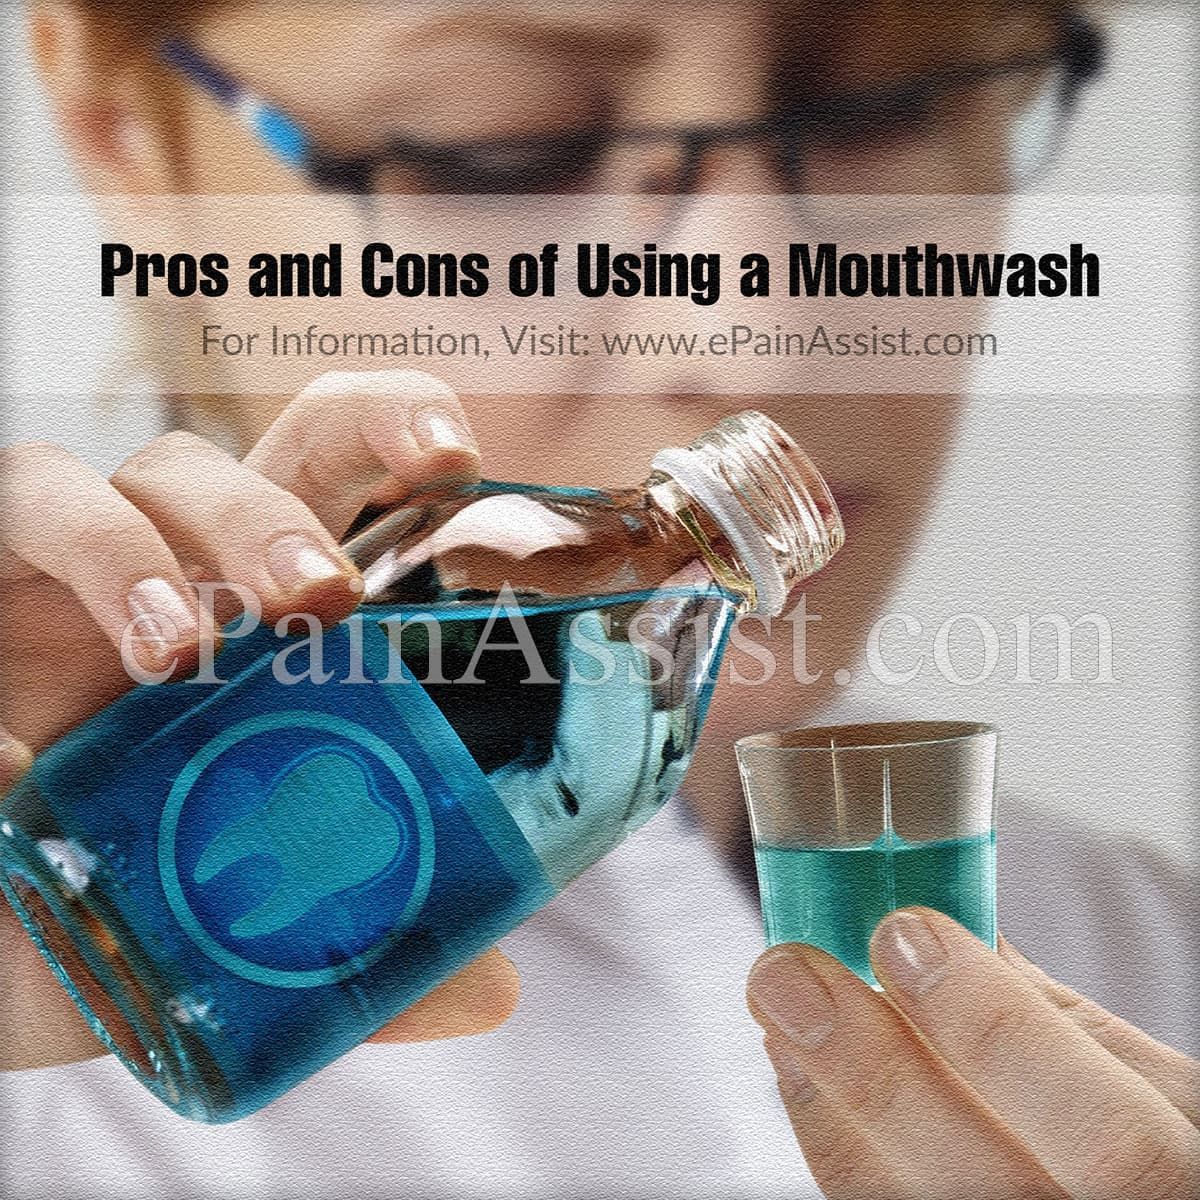 Pros and Cons of Using a Mouthwash